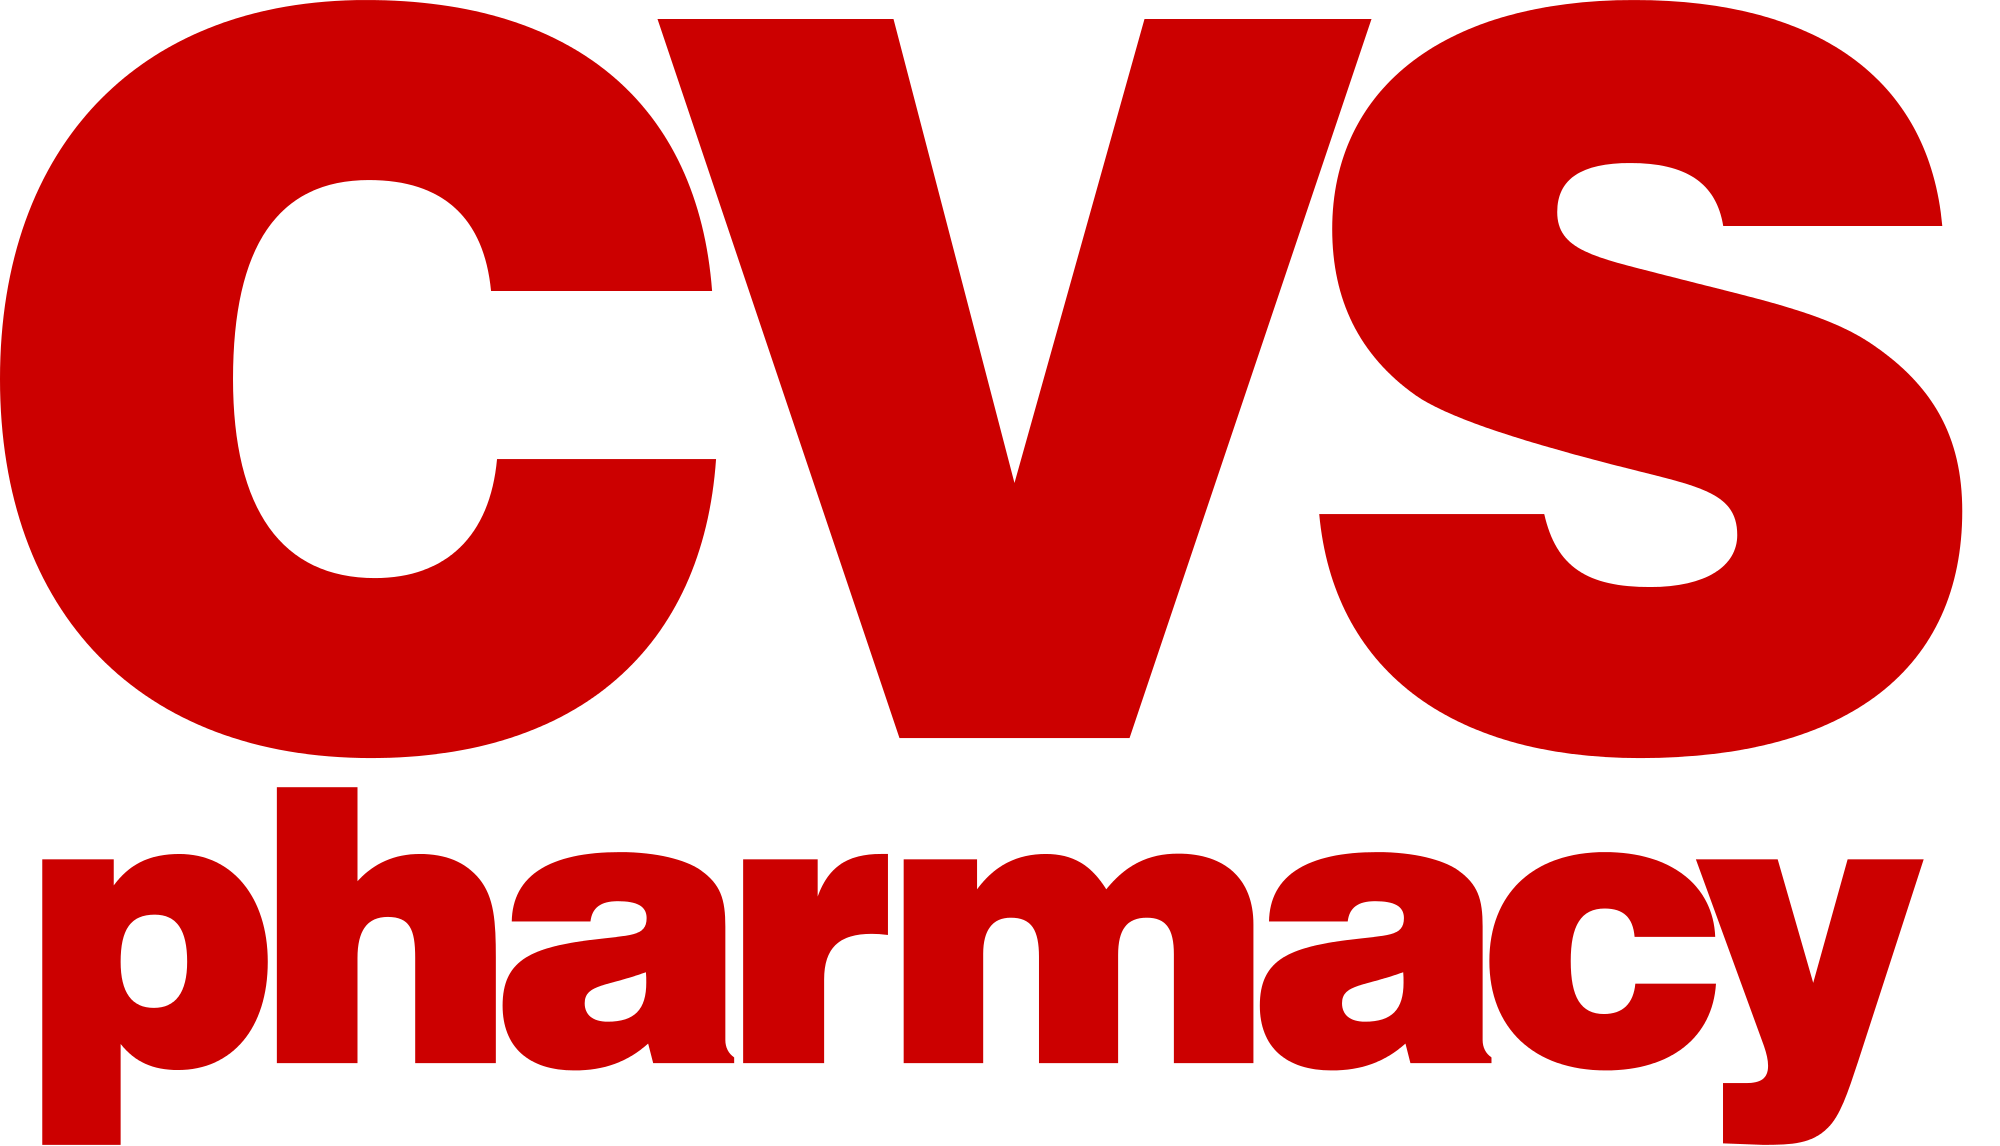 CVS Logo - File:CVS Pharmacy Alt Logo.svg - Wikimedia Commons